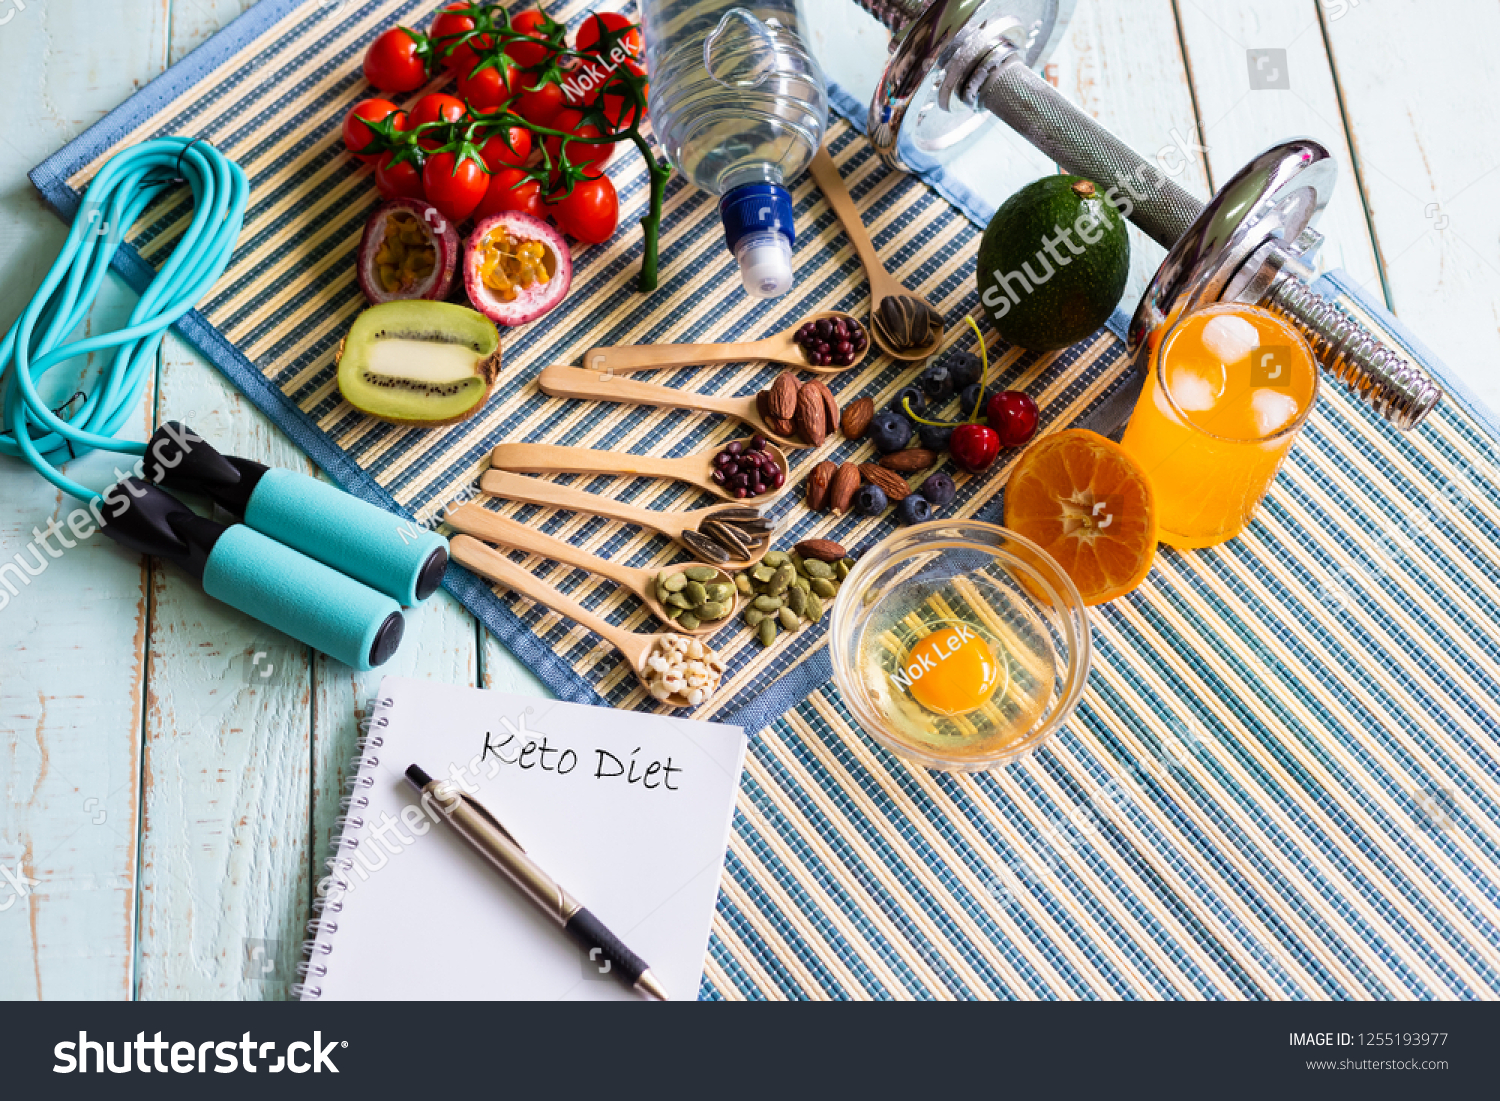 Ketogenic Diet Meal Plan Workout Fitness Food And Drink Stock Image 1255193977